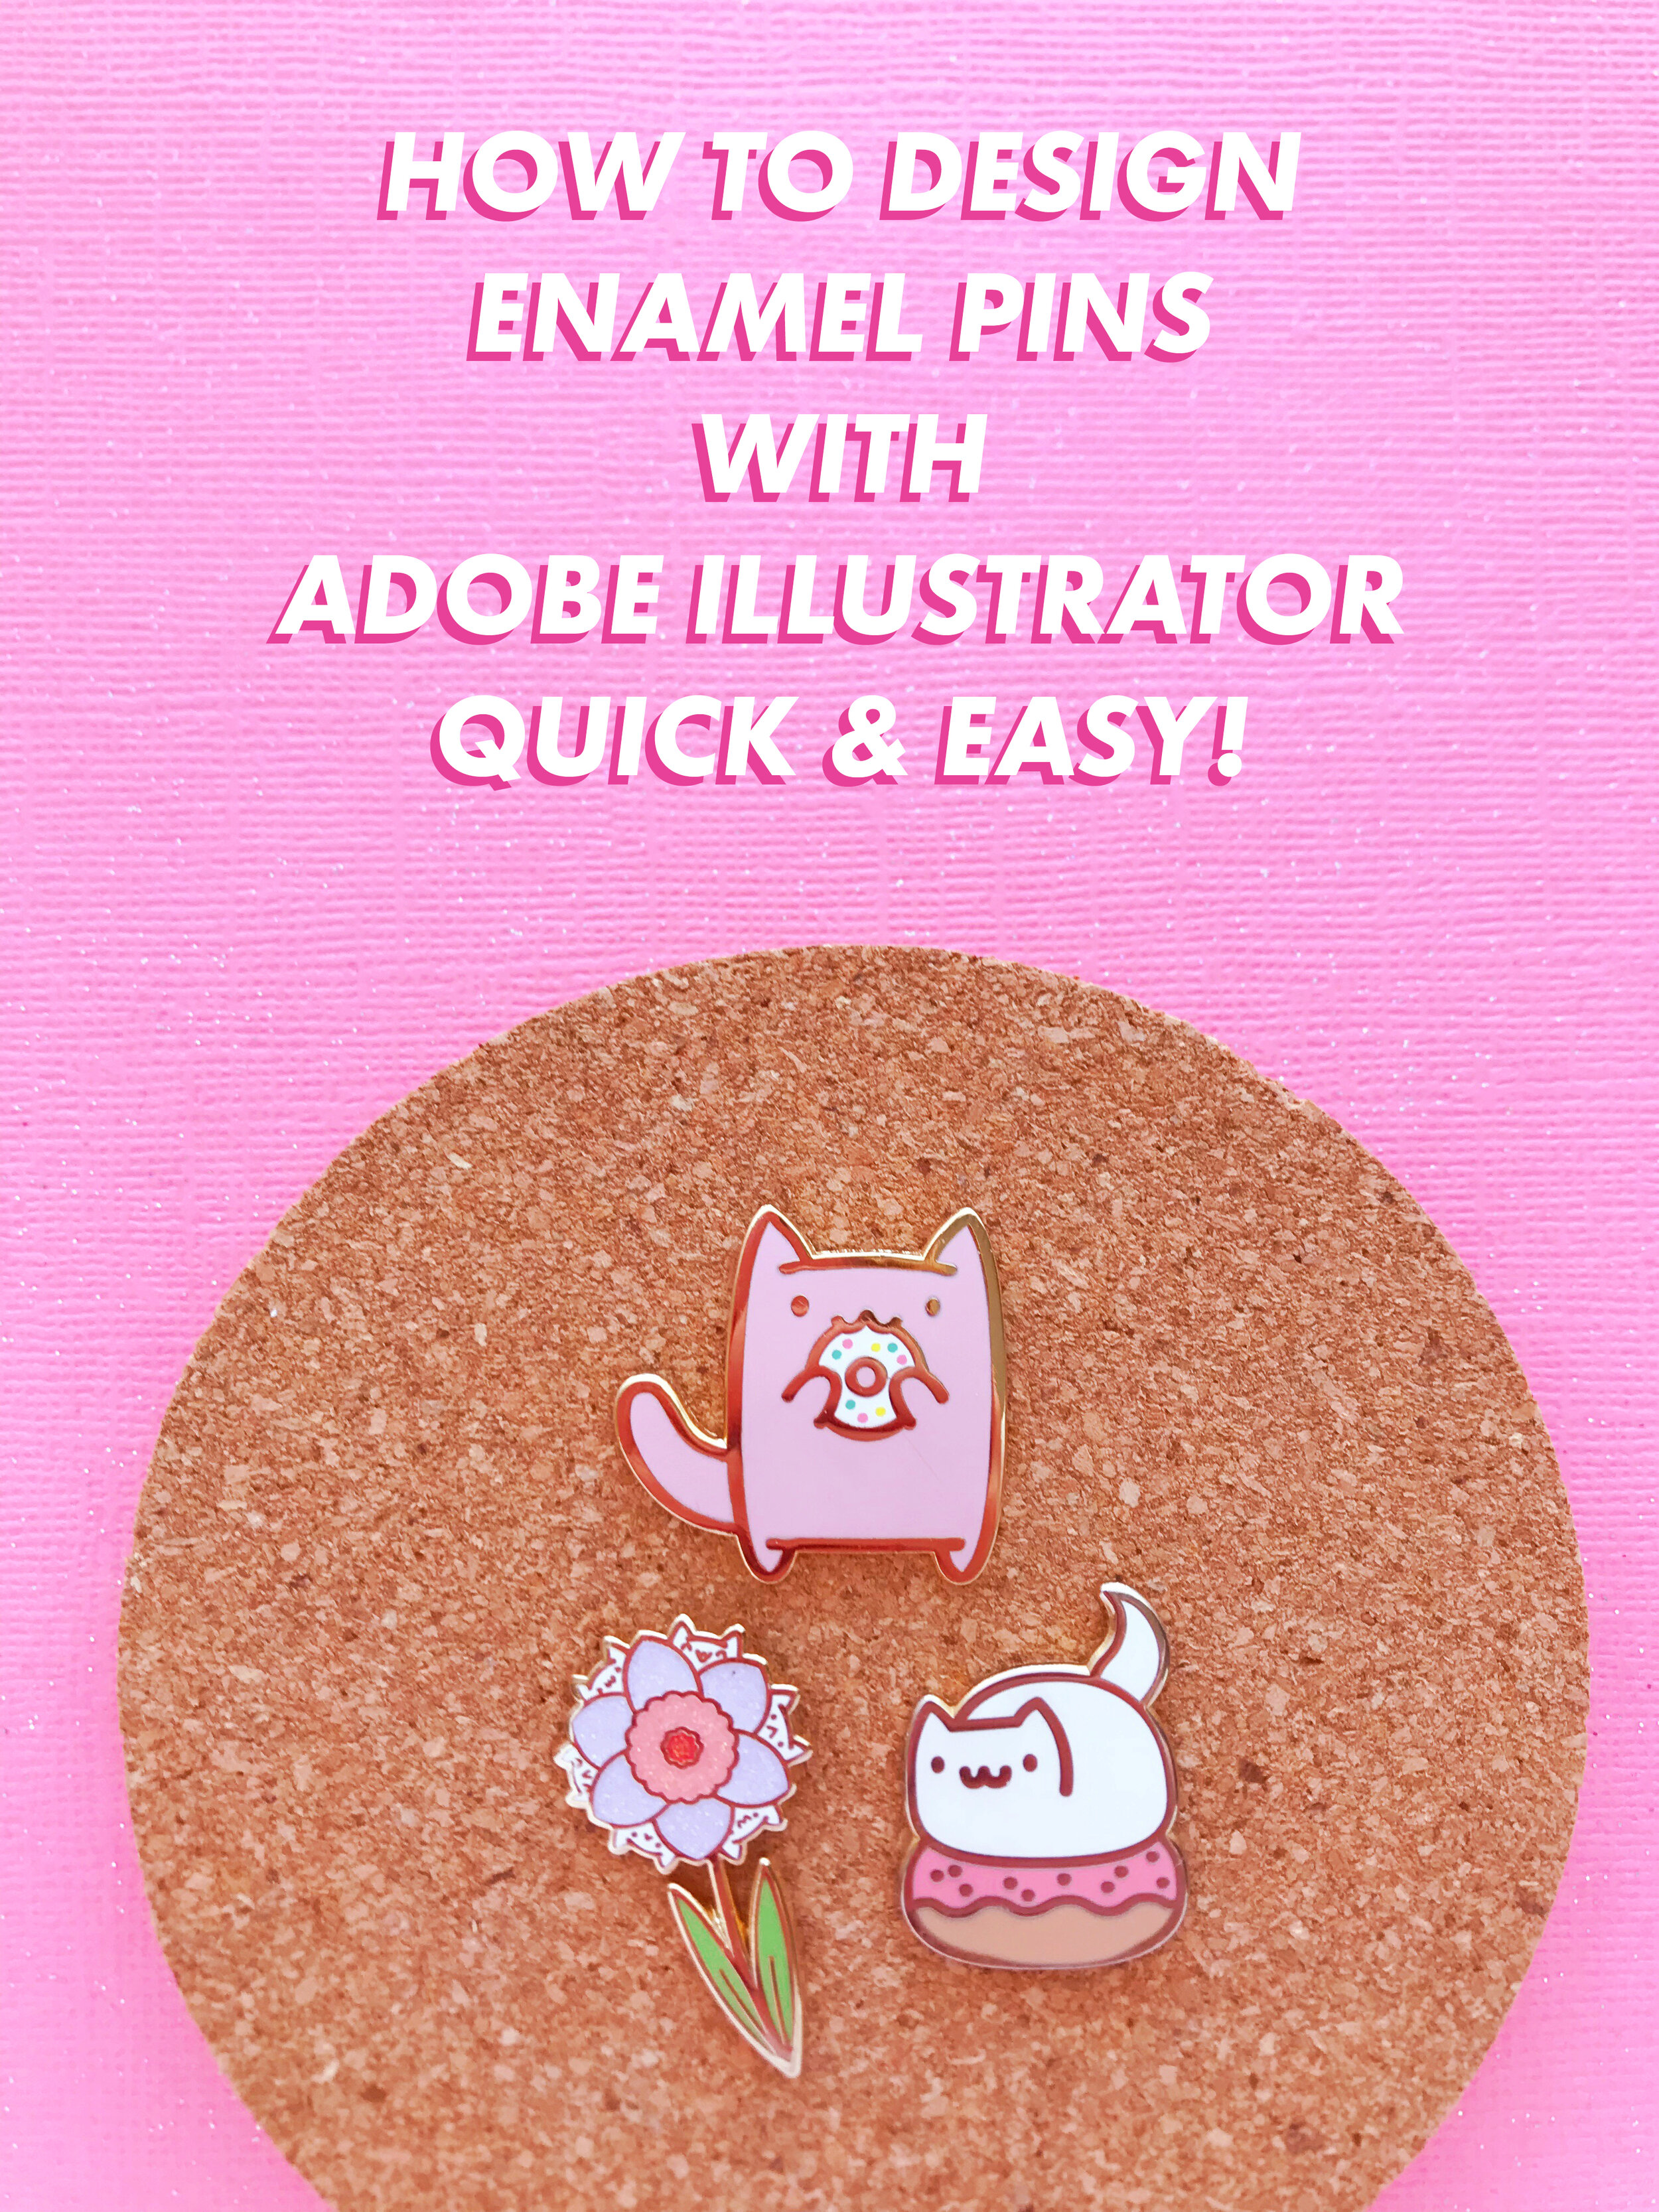 how-to-design-enamel-pins-with-adobe-illustrator-quick-and-easy-blog.jpg